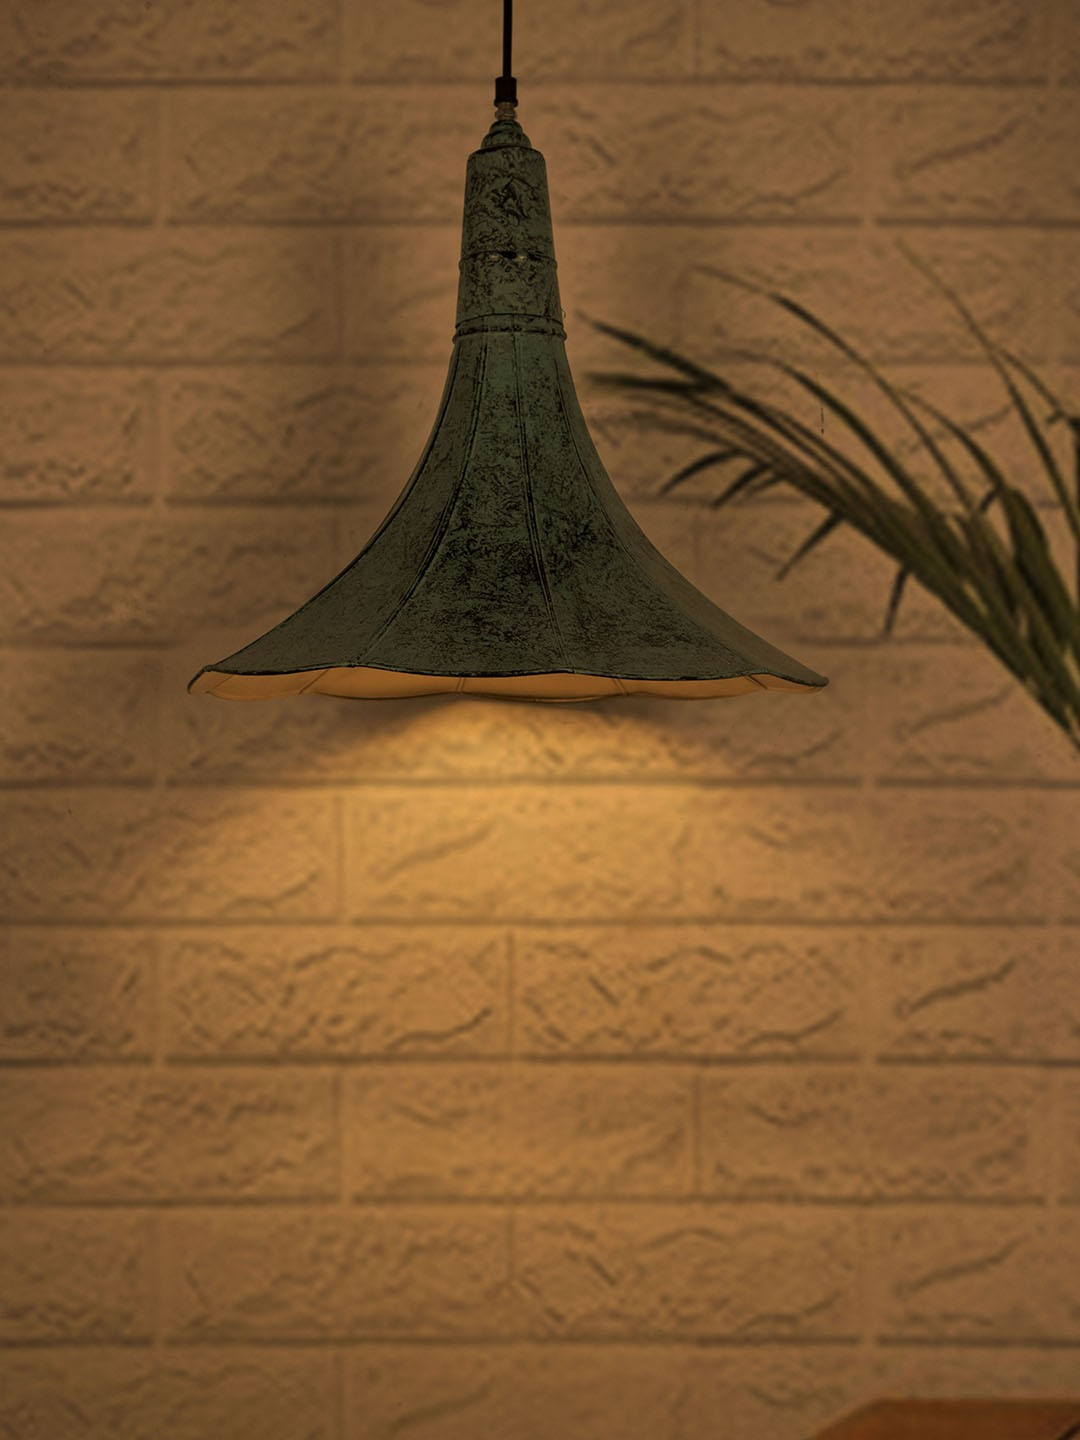 Vintage Gramophone Horn Pendant Light in Patina Finish